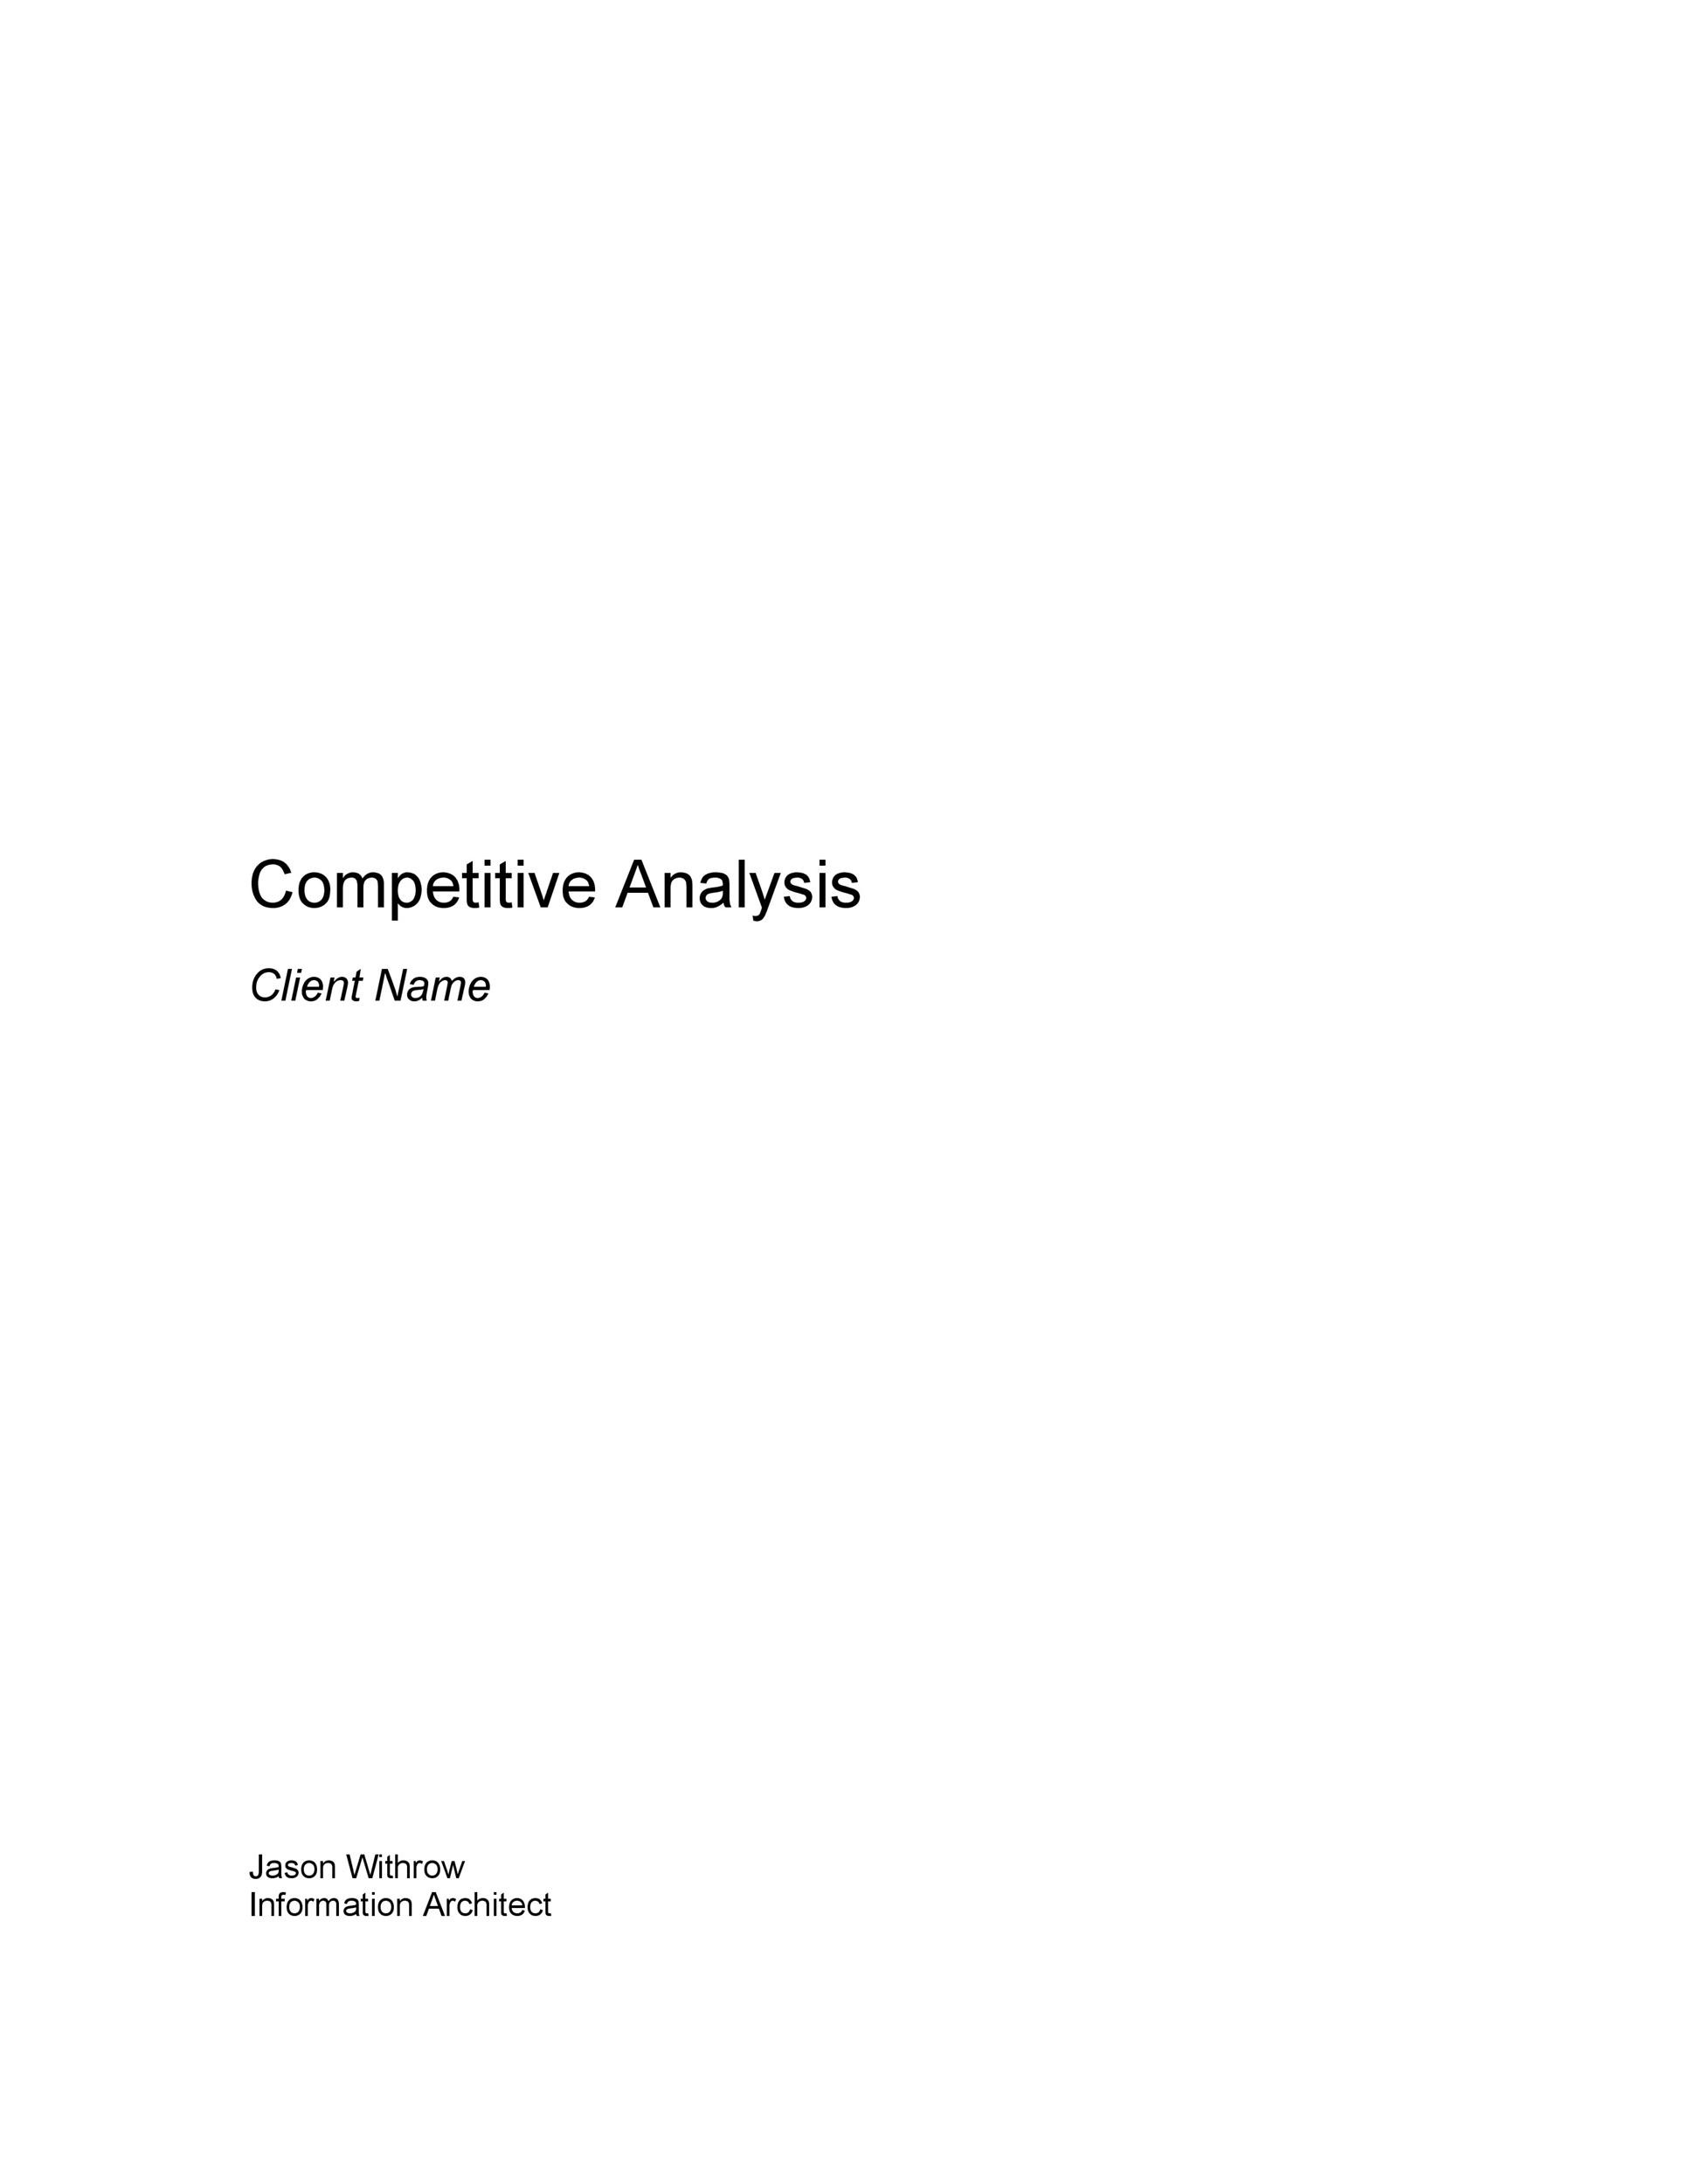 Free competitive analysis template 10